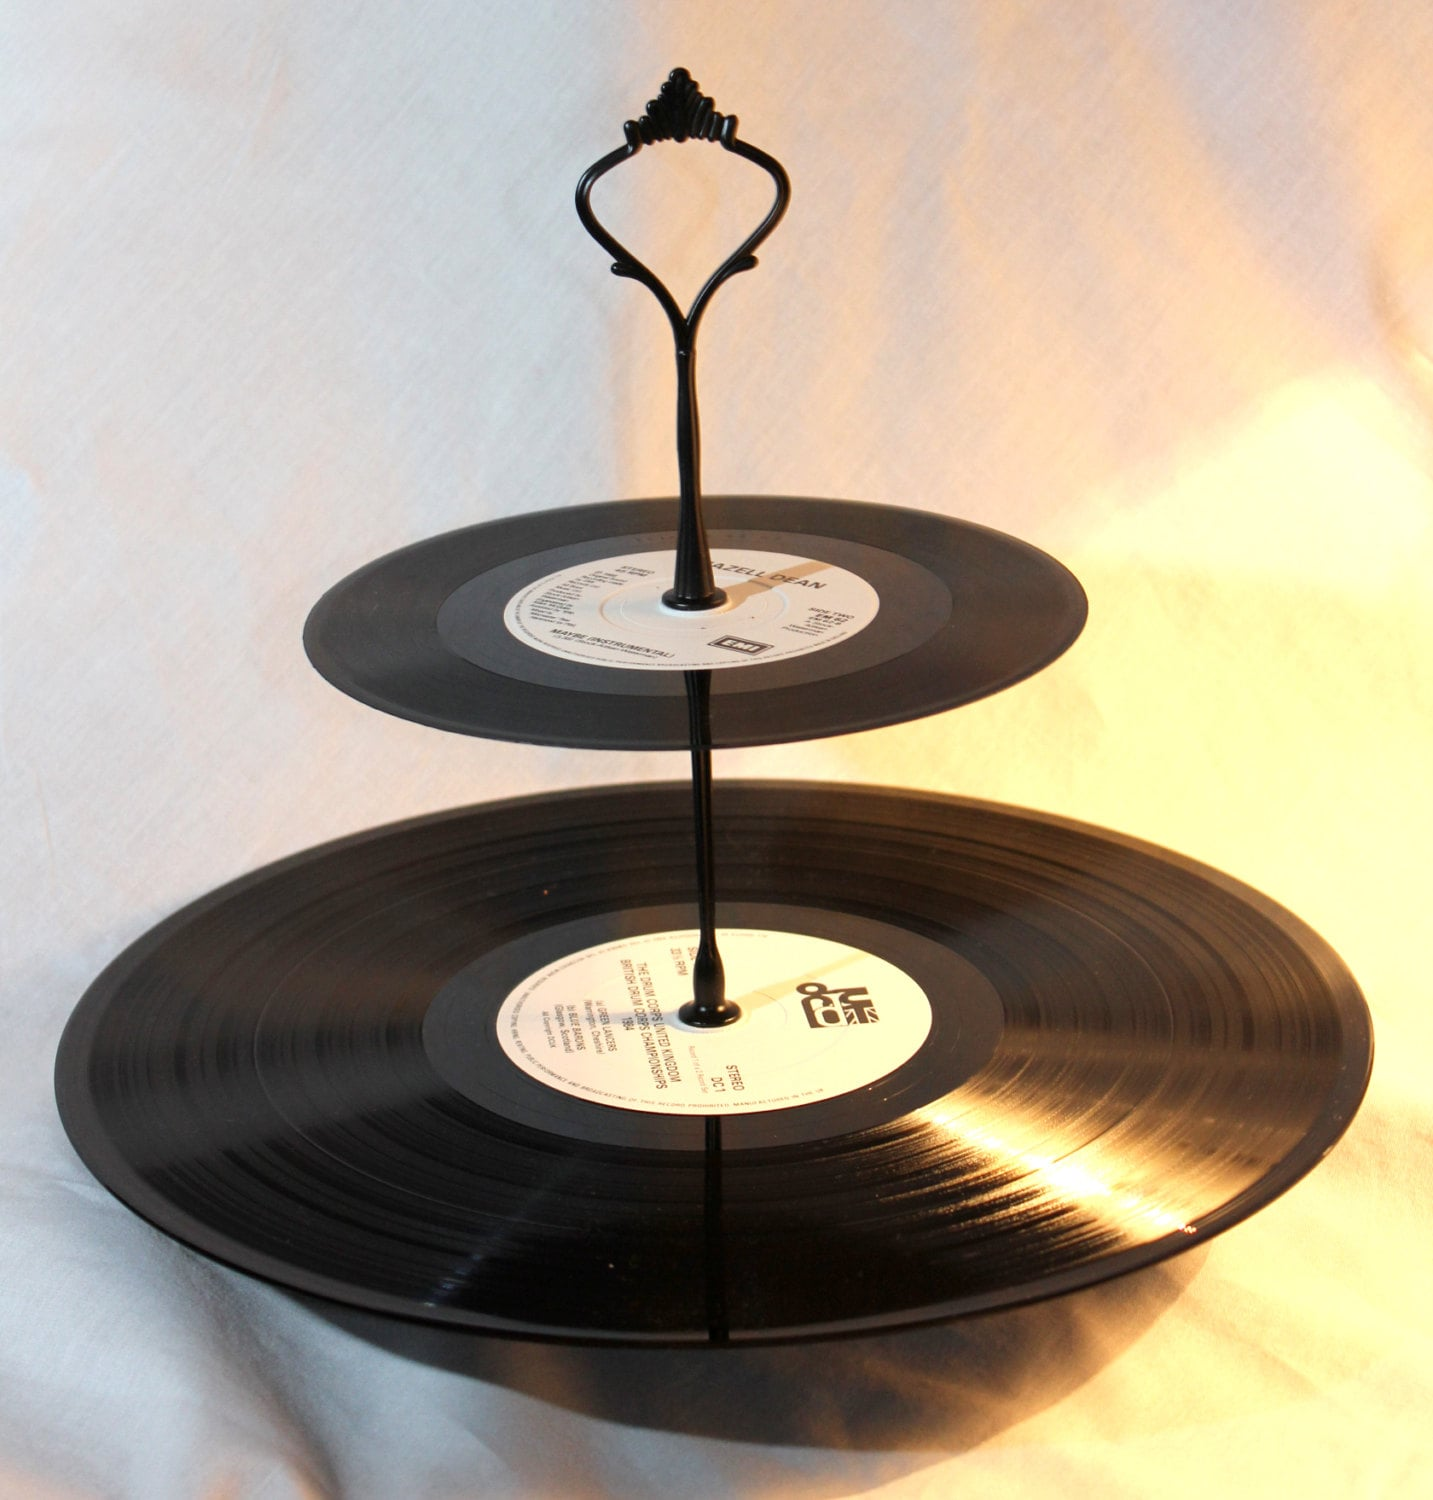 2 Tier Cake Stand Vintage Vinyl Record Cake Or Jewellery